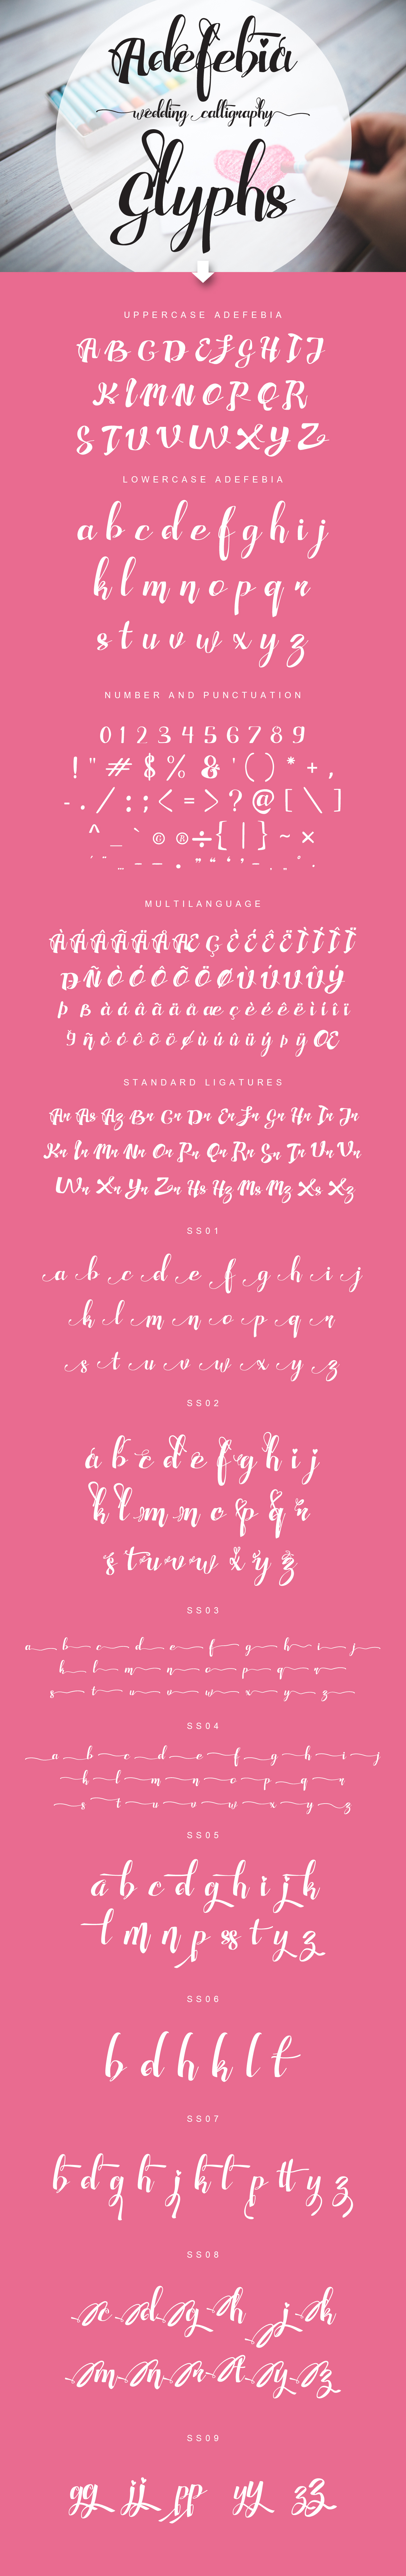 Adefebia Wedding Script Font example image 2